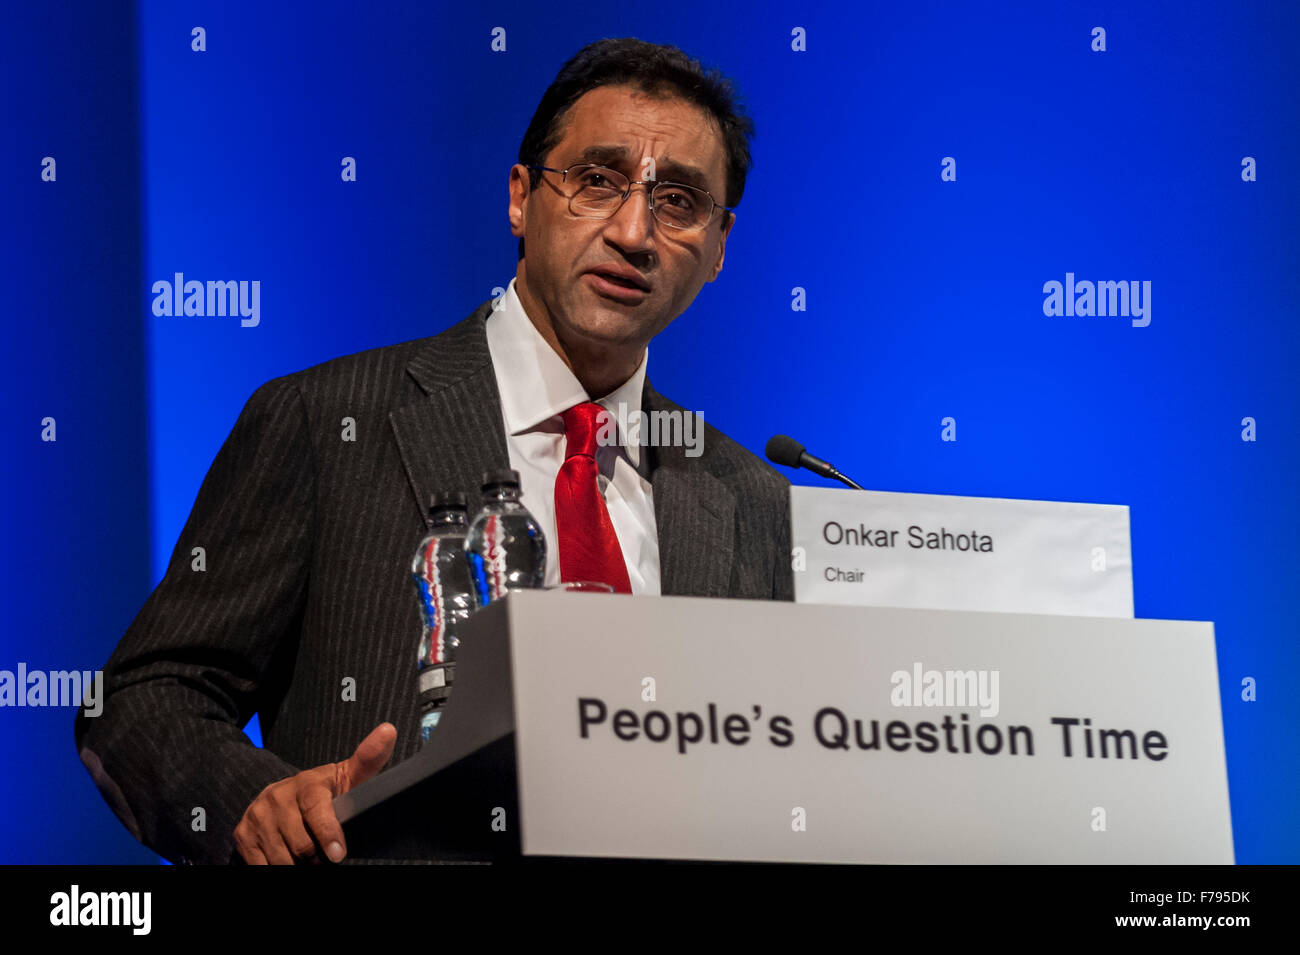 London, UK.  26 November 2015.  Dr Onkar Sahota, the London Assembly Member for Ealing and Hillingdon chairs People's - Stock Image